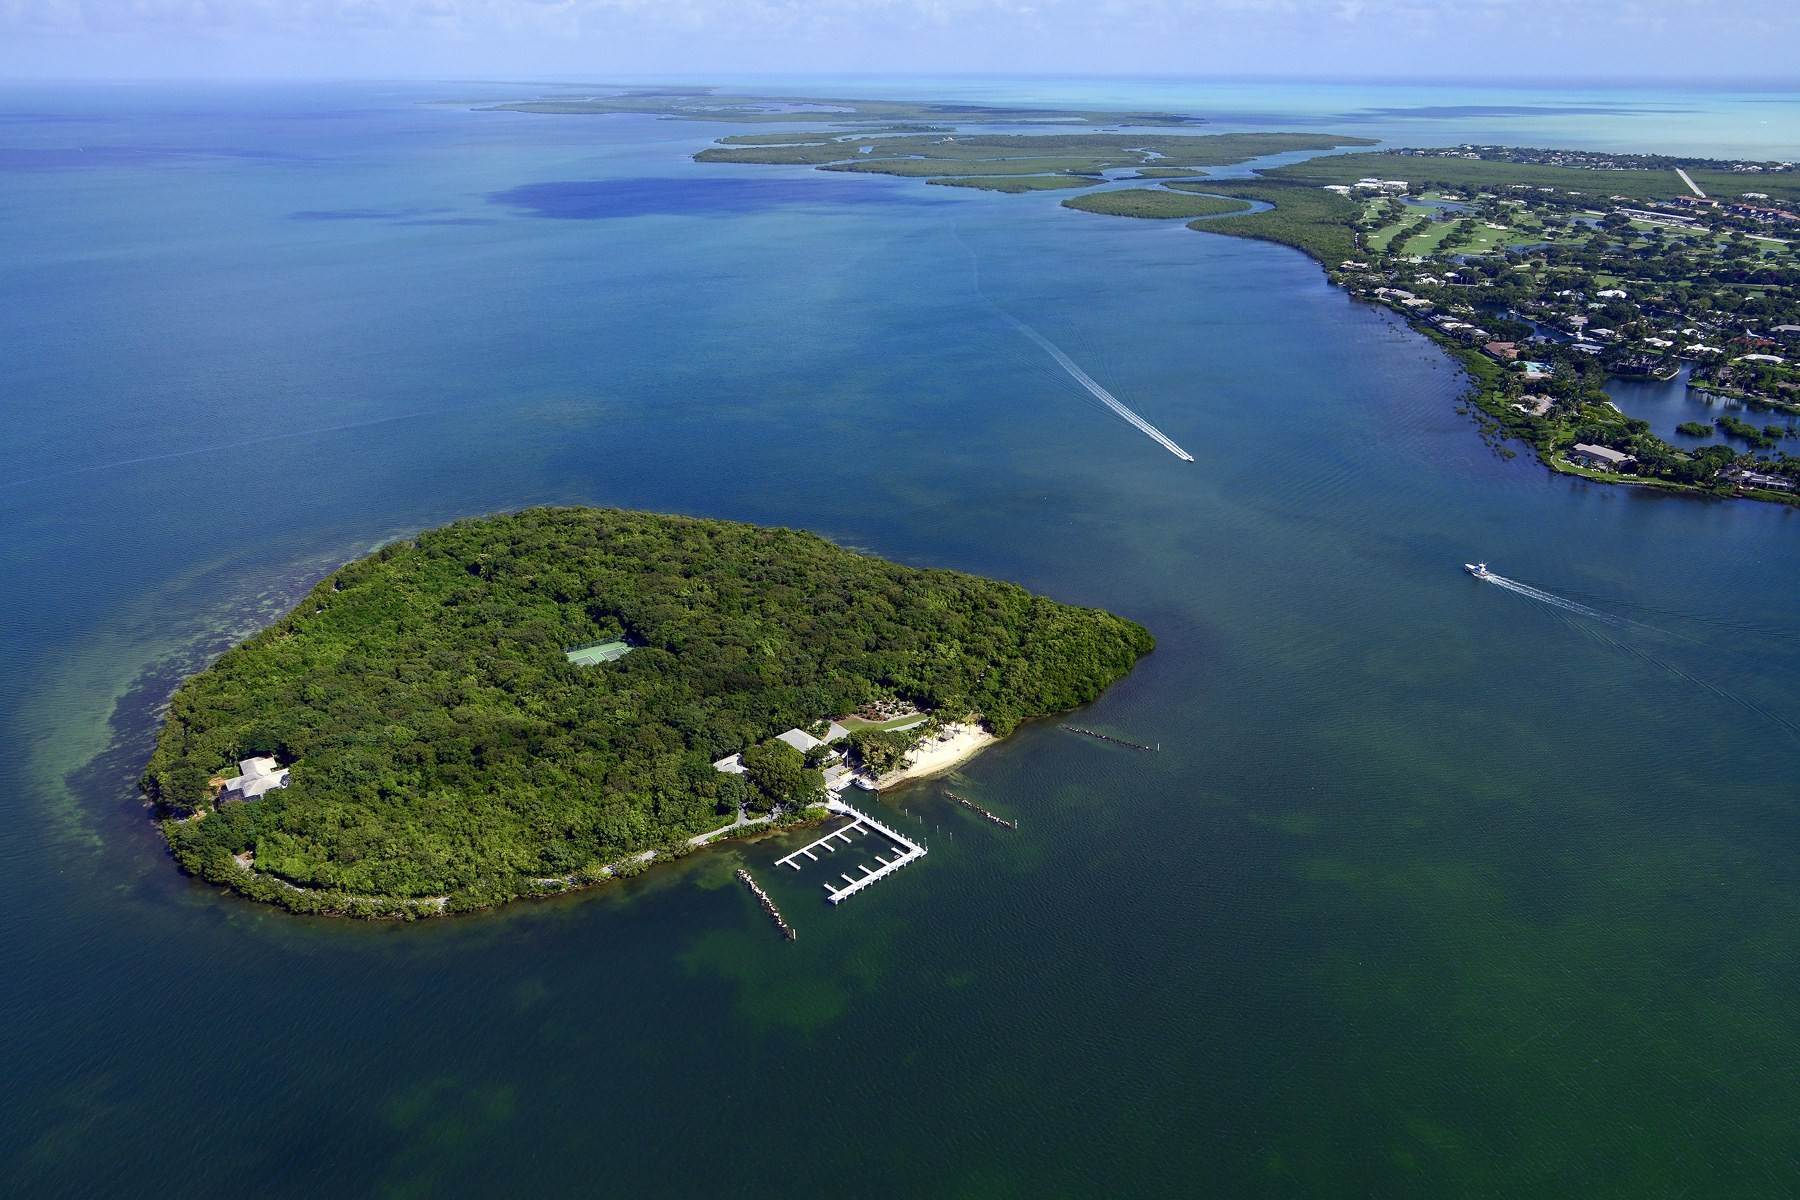 Property for Sale at Pumpkin Key - Private Island, Key Largo, FL Pumpkin Key - Private Island Key Largo, Florida 33037 United States